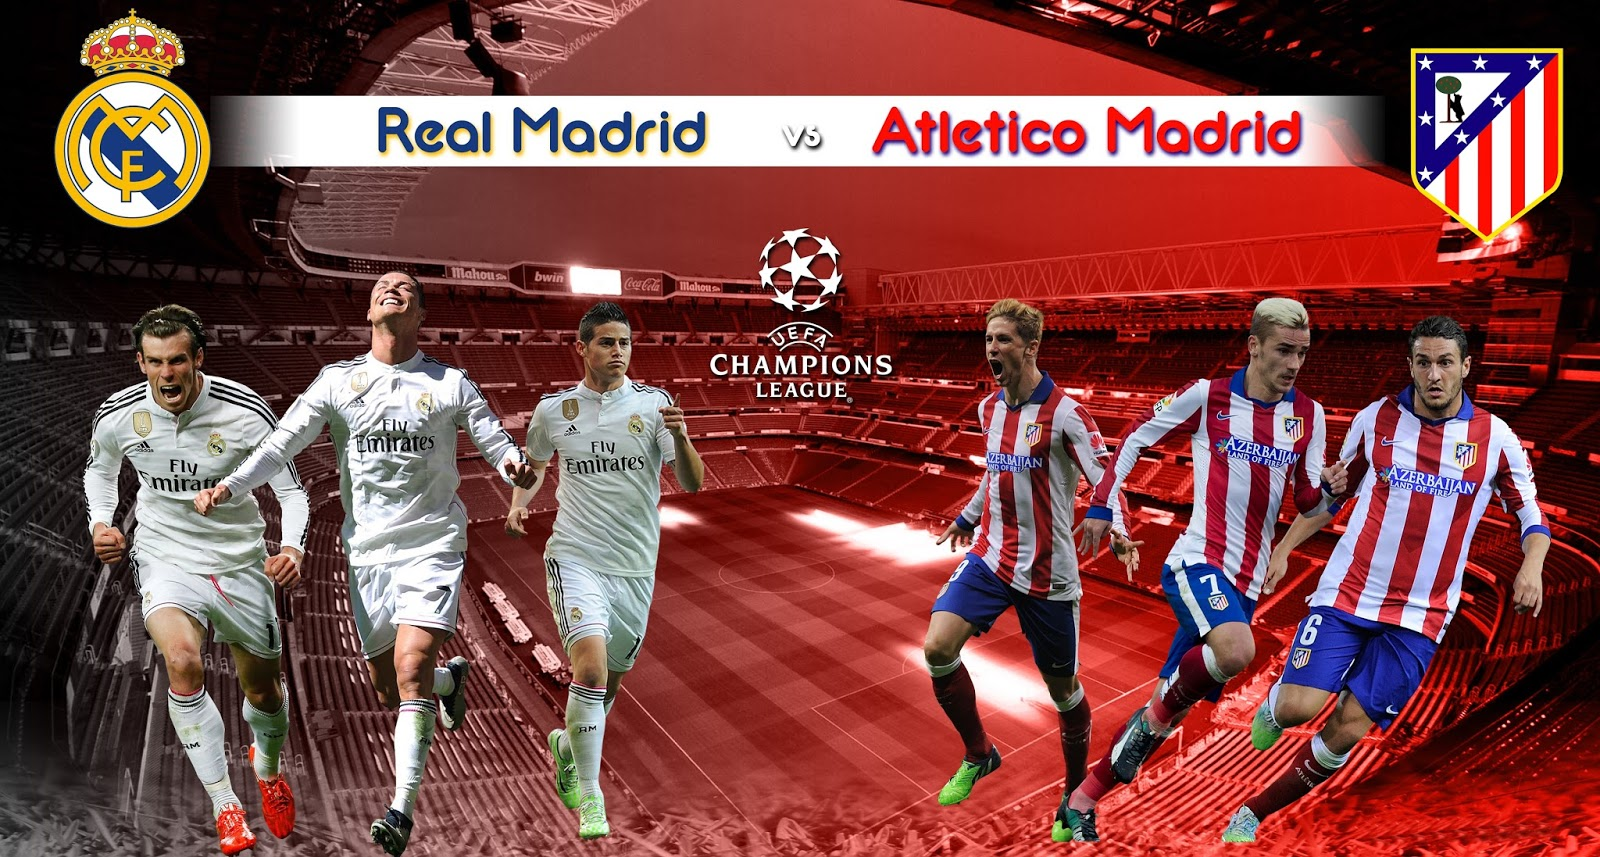 PREDIKSI LAGA REAL MADRID VS ATLETICO MADRID : LOS BLANCOS Di Atas Angin!